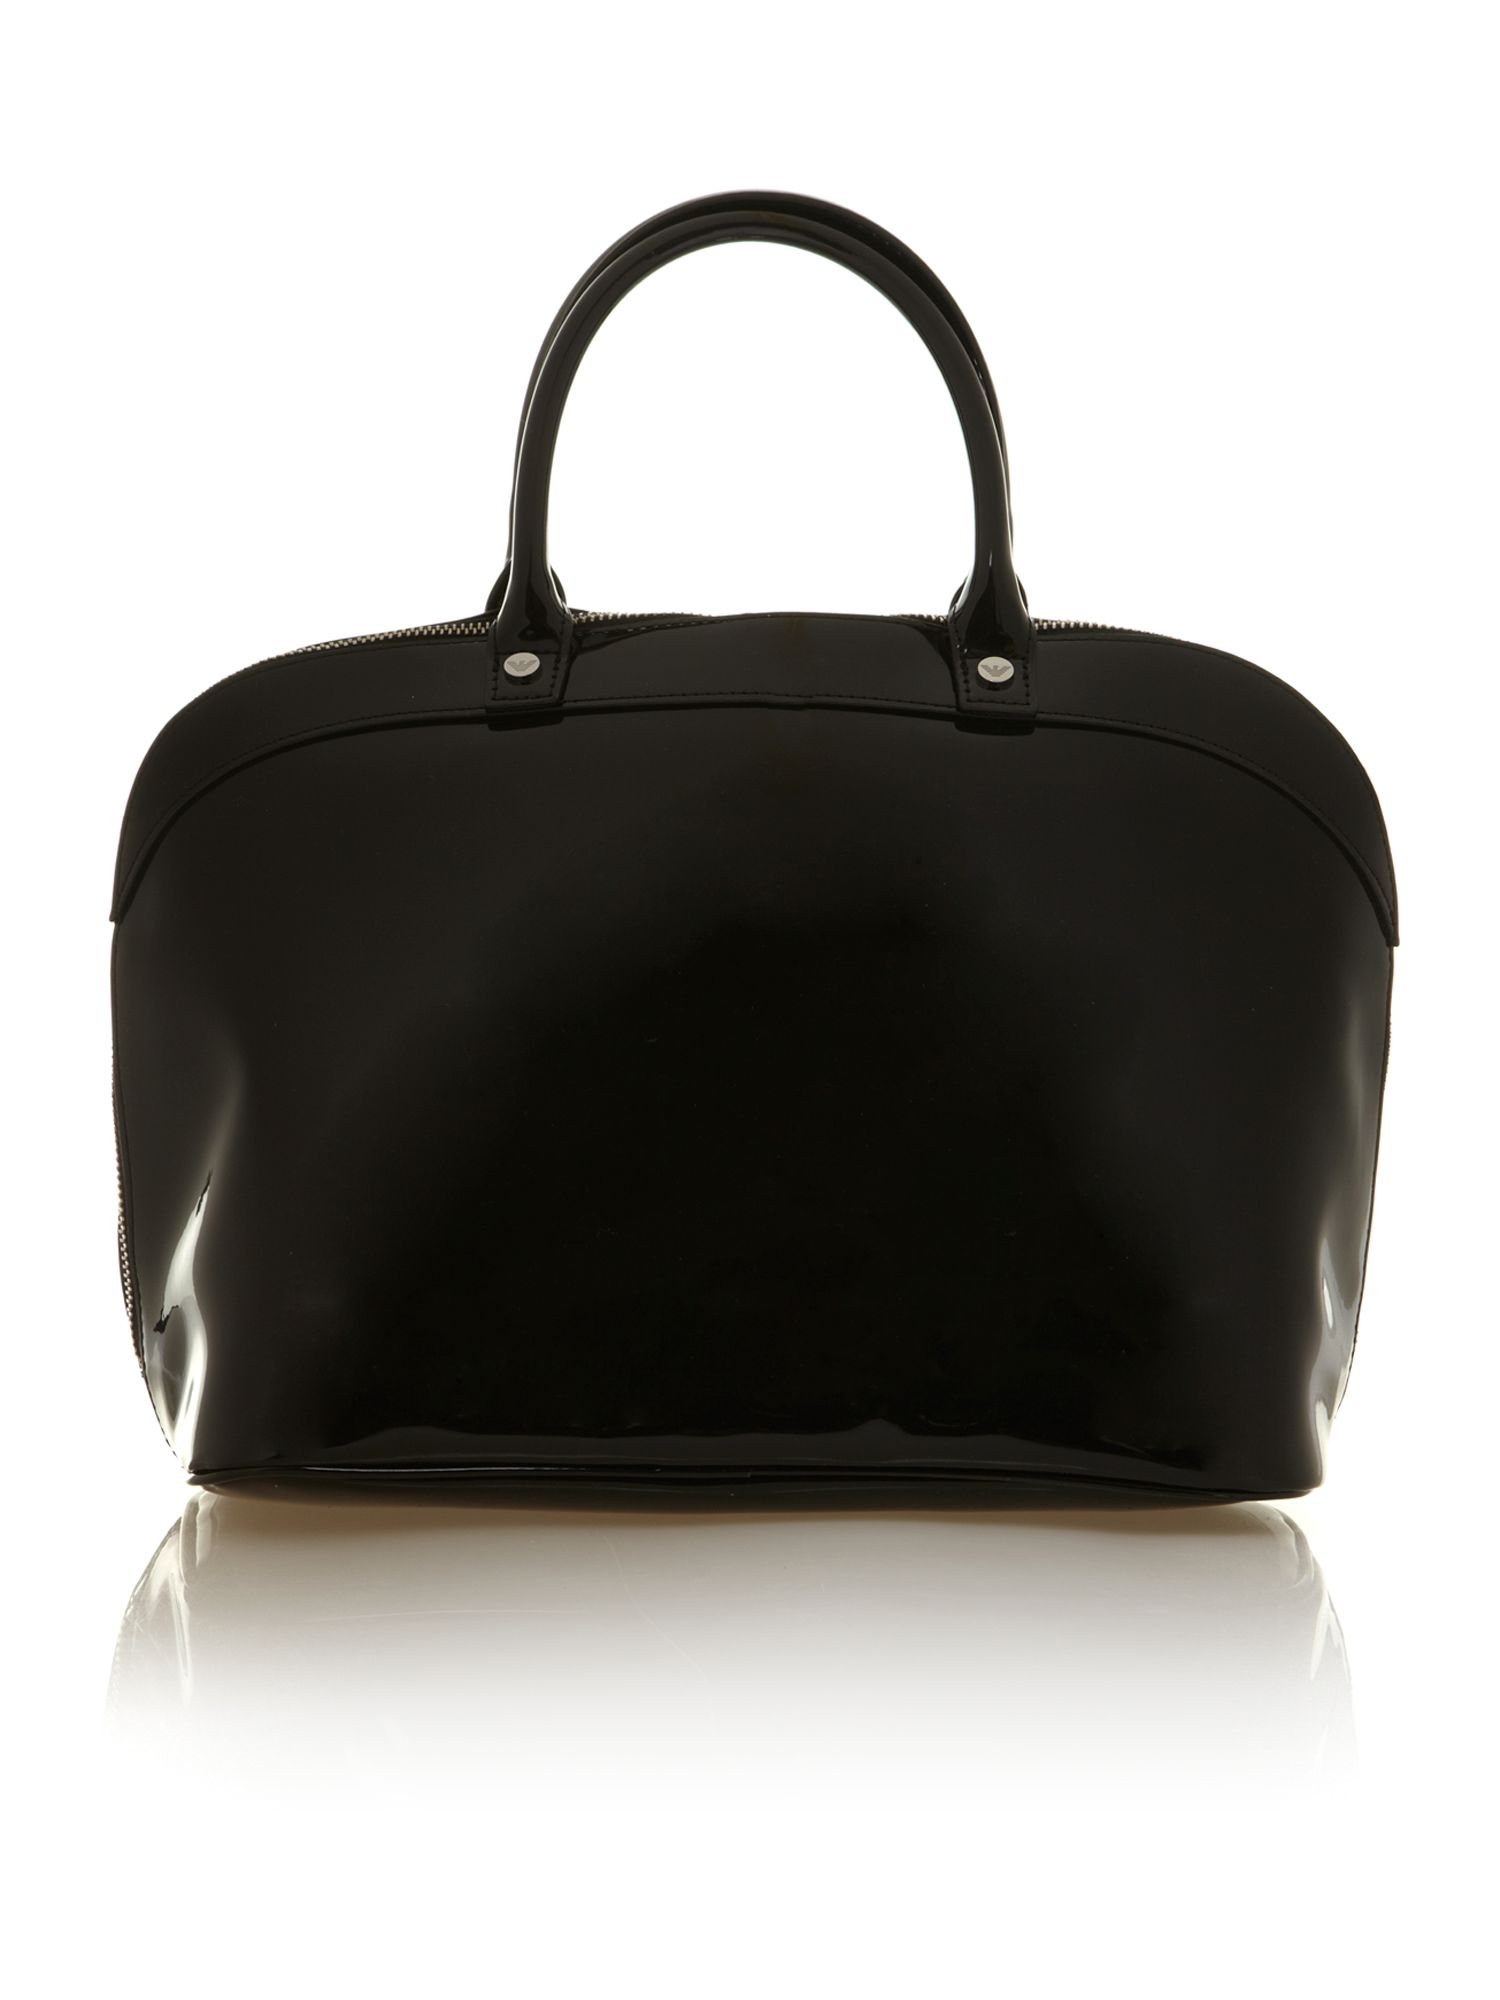 Patent dome bag